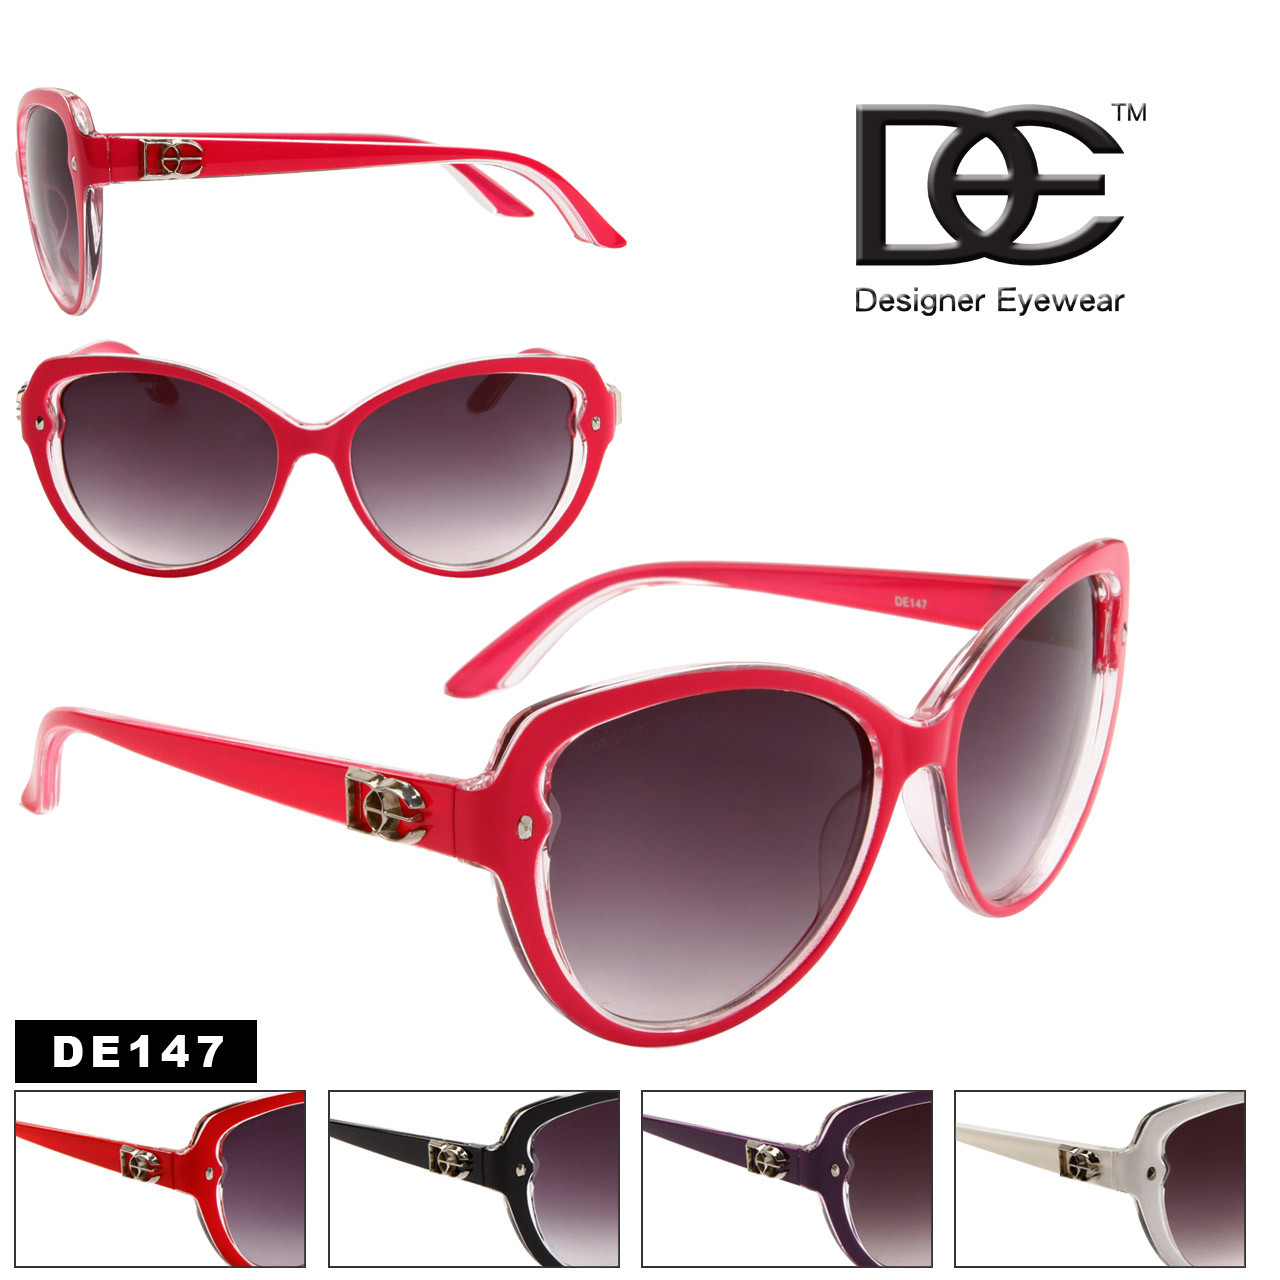 DE™ Cat Eye Fashion Sunglasses Style # DE147